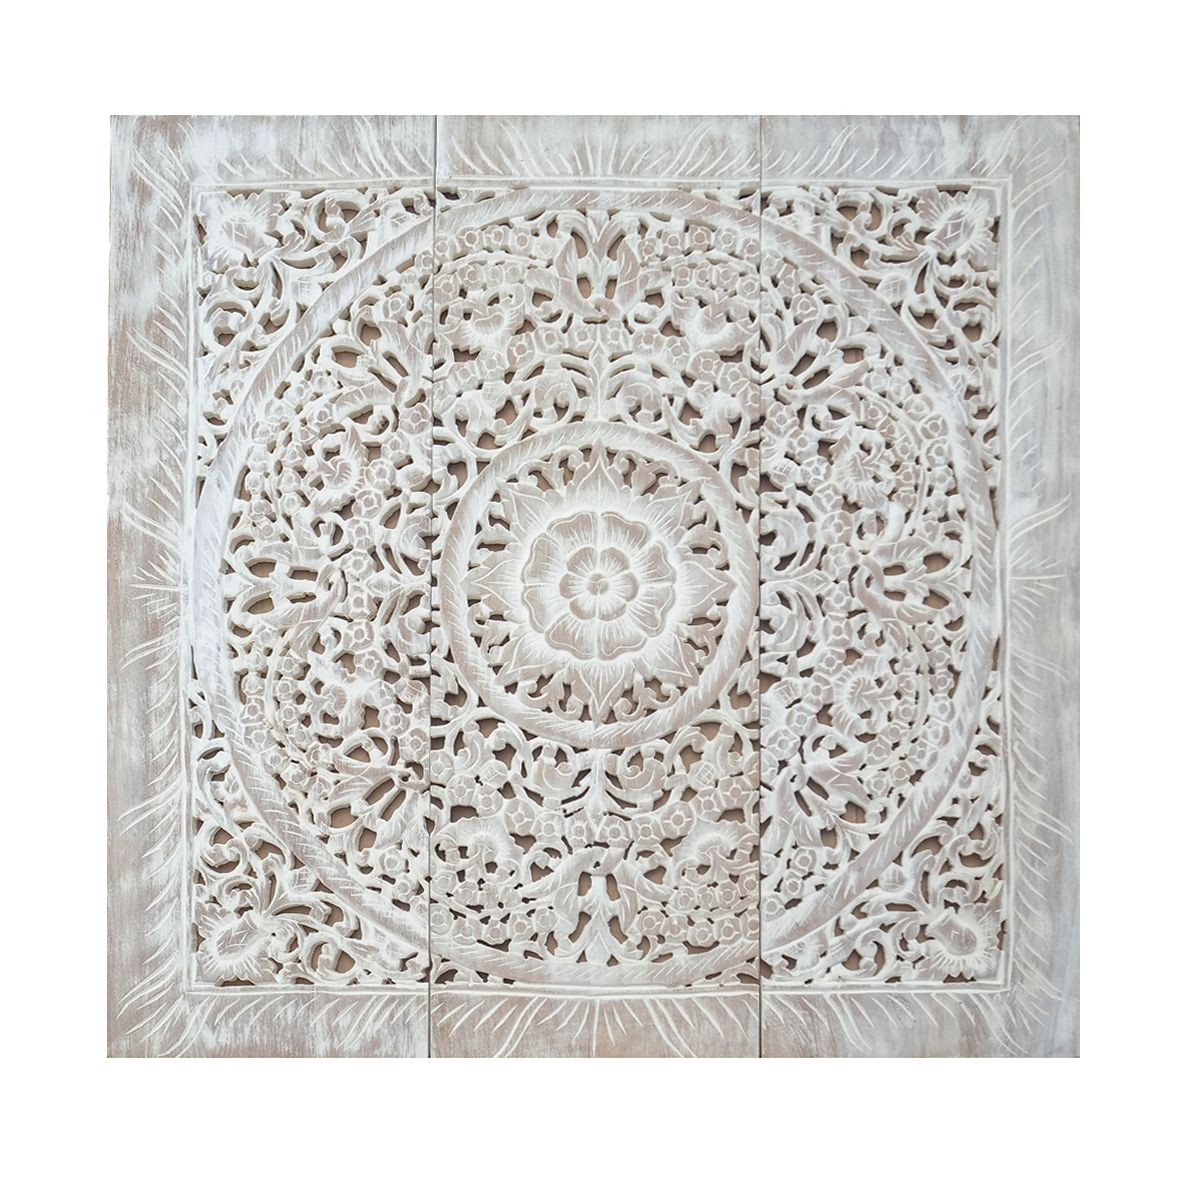 Buy Balinese Antique Wood Carving Wall Art Panel Online Carved Wood Wall Art White Wood Wall Decor Wood Wall Art Decor